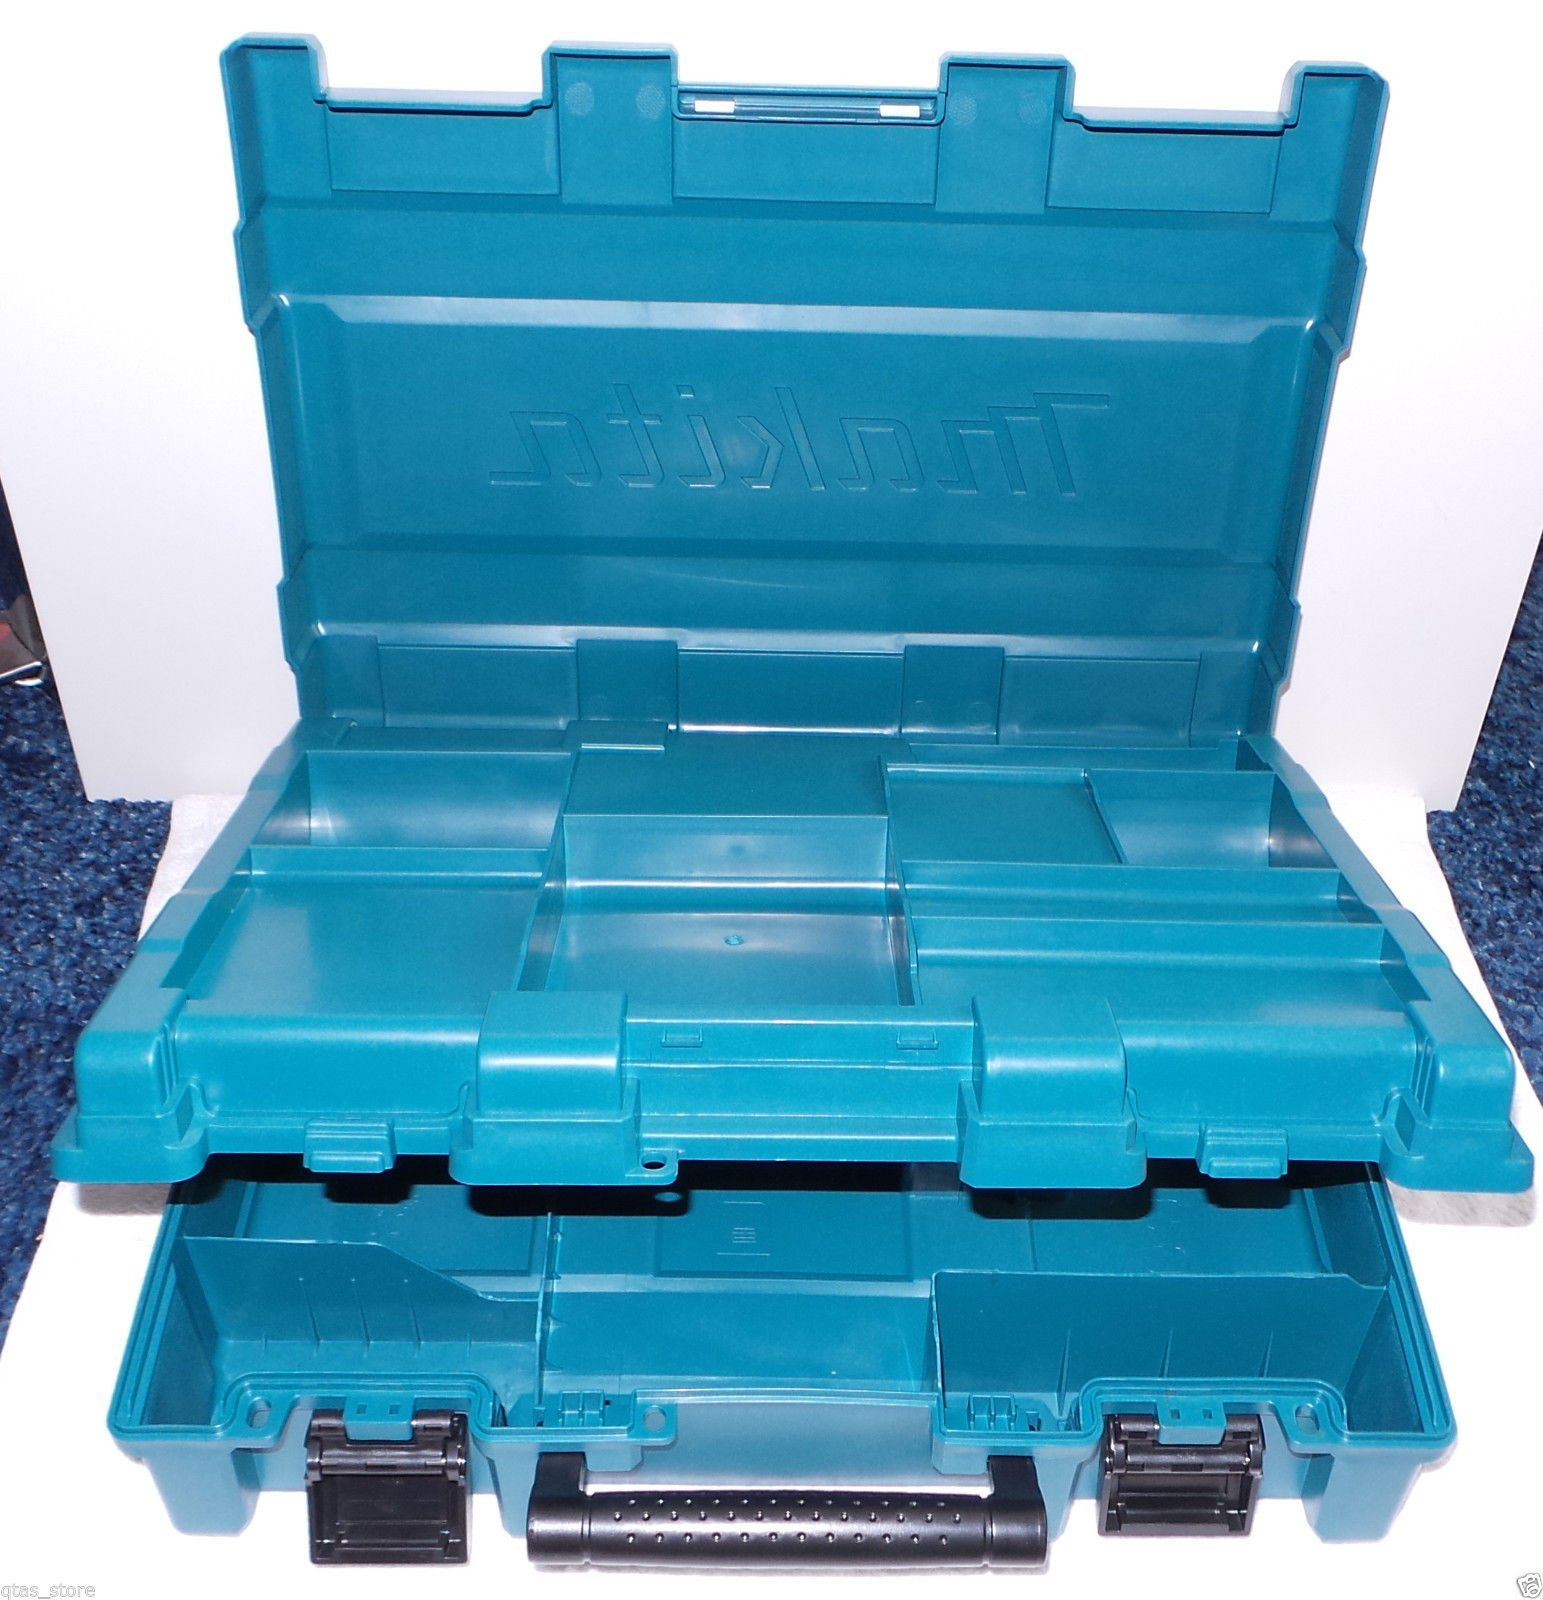 MAKITA Tool Case ONLY--XT257M / XT252M--FIT Both Drill & Impact Driver--Almost all Makita Model--XPH07Z; XDT01Z; XDT08Z; LXDT04Z; LXPH01Z; XDT04Z; And alike profile cordless tools